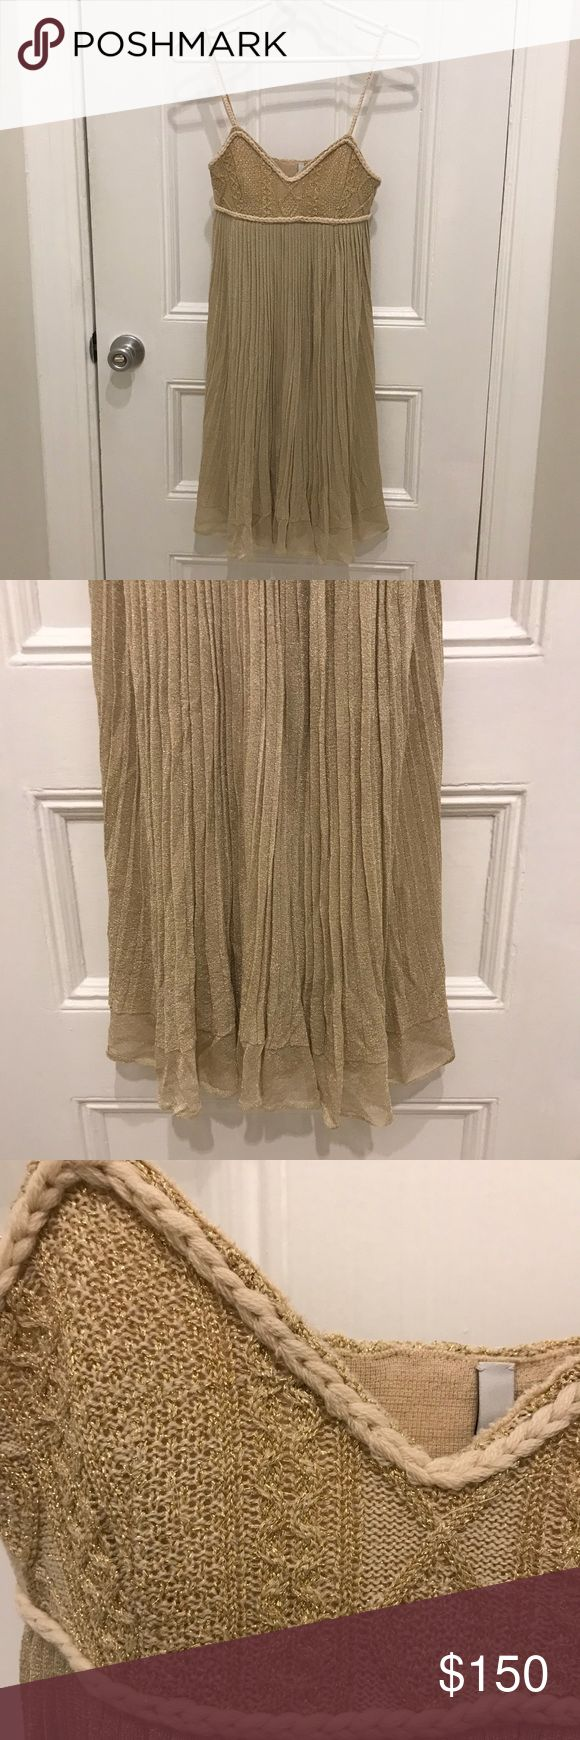 Iisli Metallic Wool Baby Doll Dress Size XS Iisli Metallic Wool Baby Doll Dress Size XS. Braided detailing and straps. Great dress for a special occasion or a summer date night. Beautiful metallic color compliments any skin tone. Iisli Dresses Mini